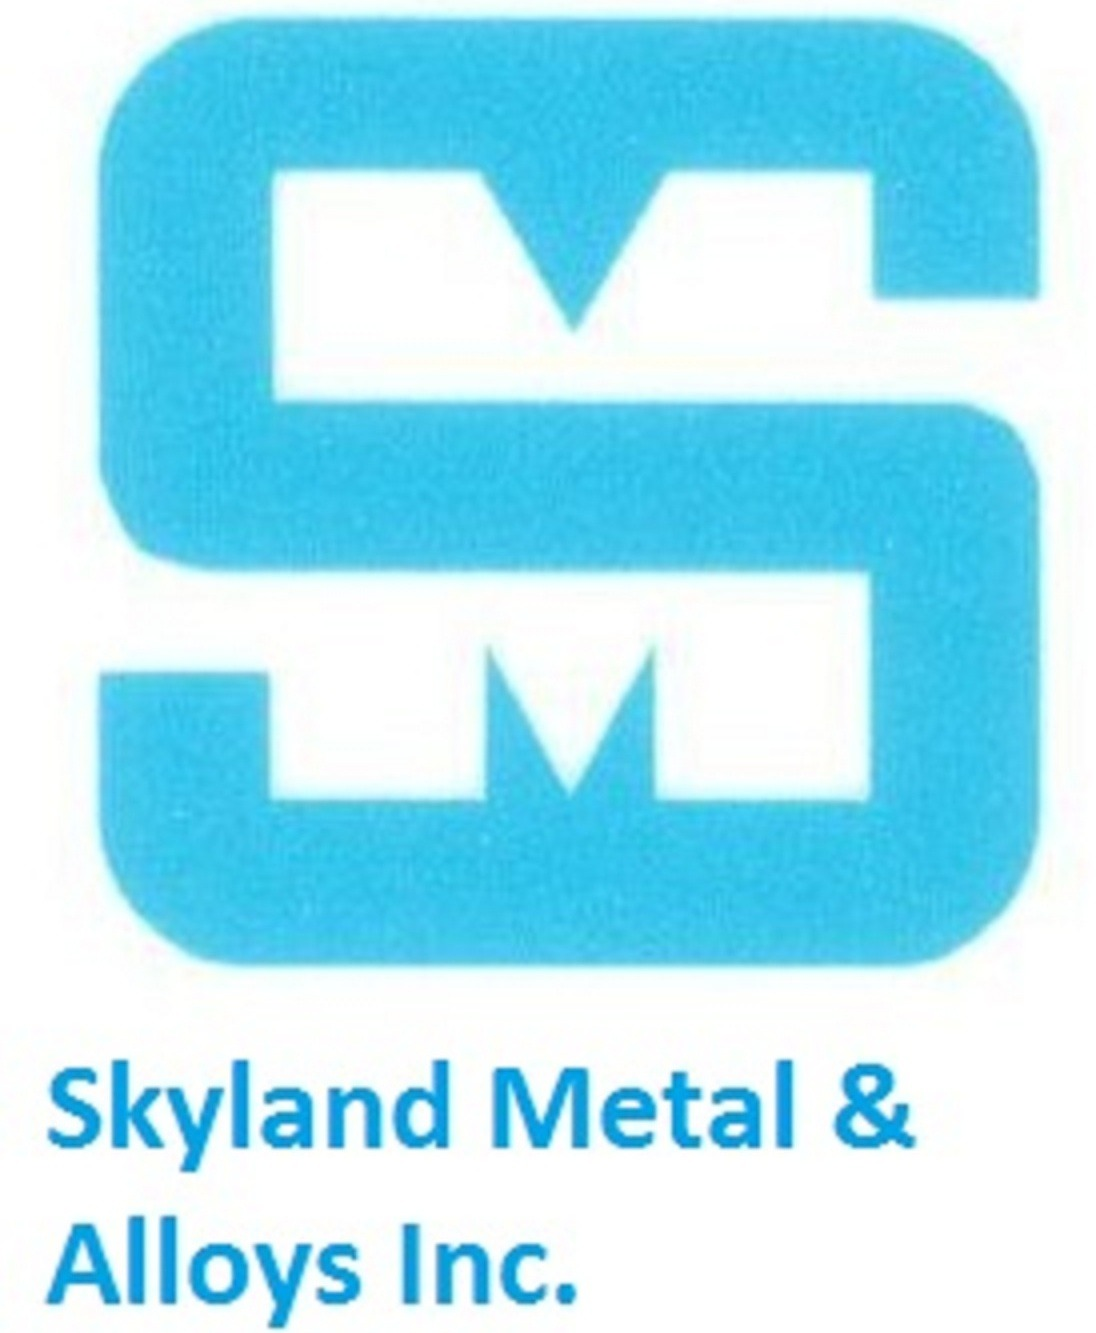 skyland-metal-and-alloys-inc